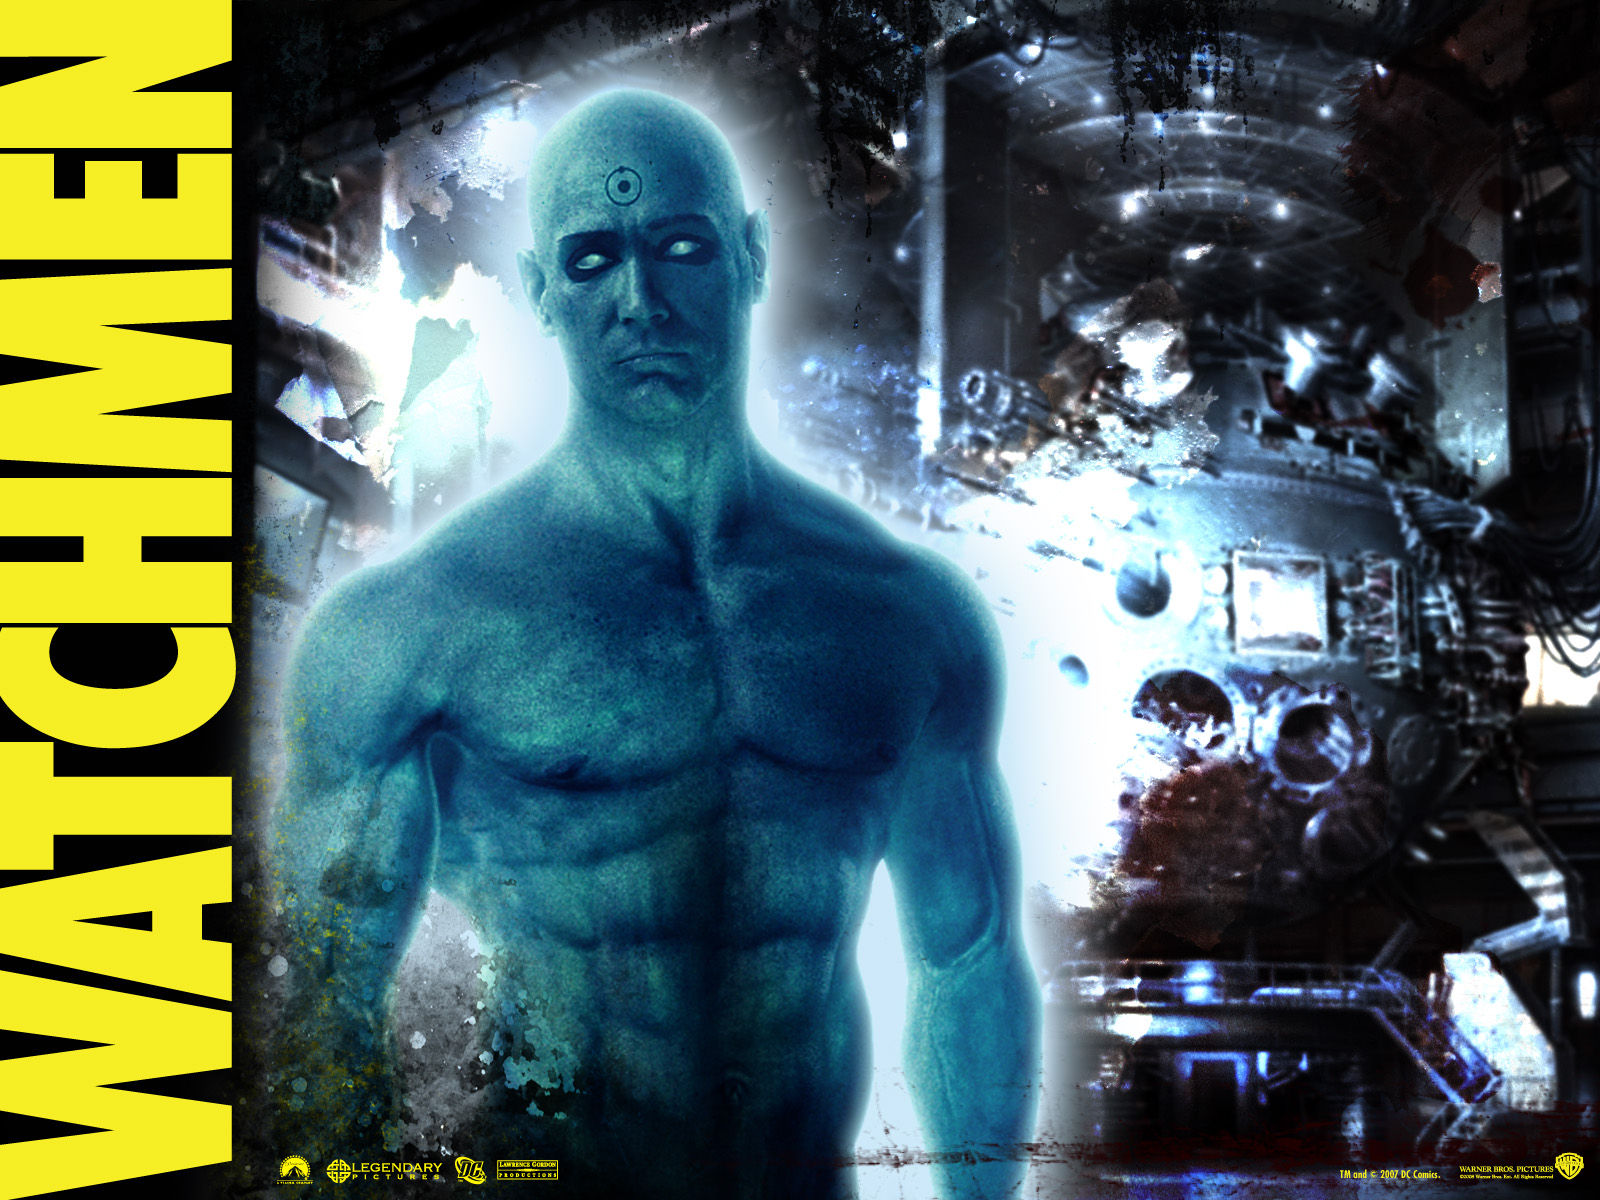 Dr. Manhattan Other images in post